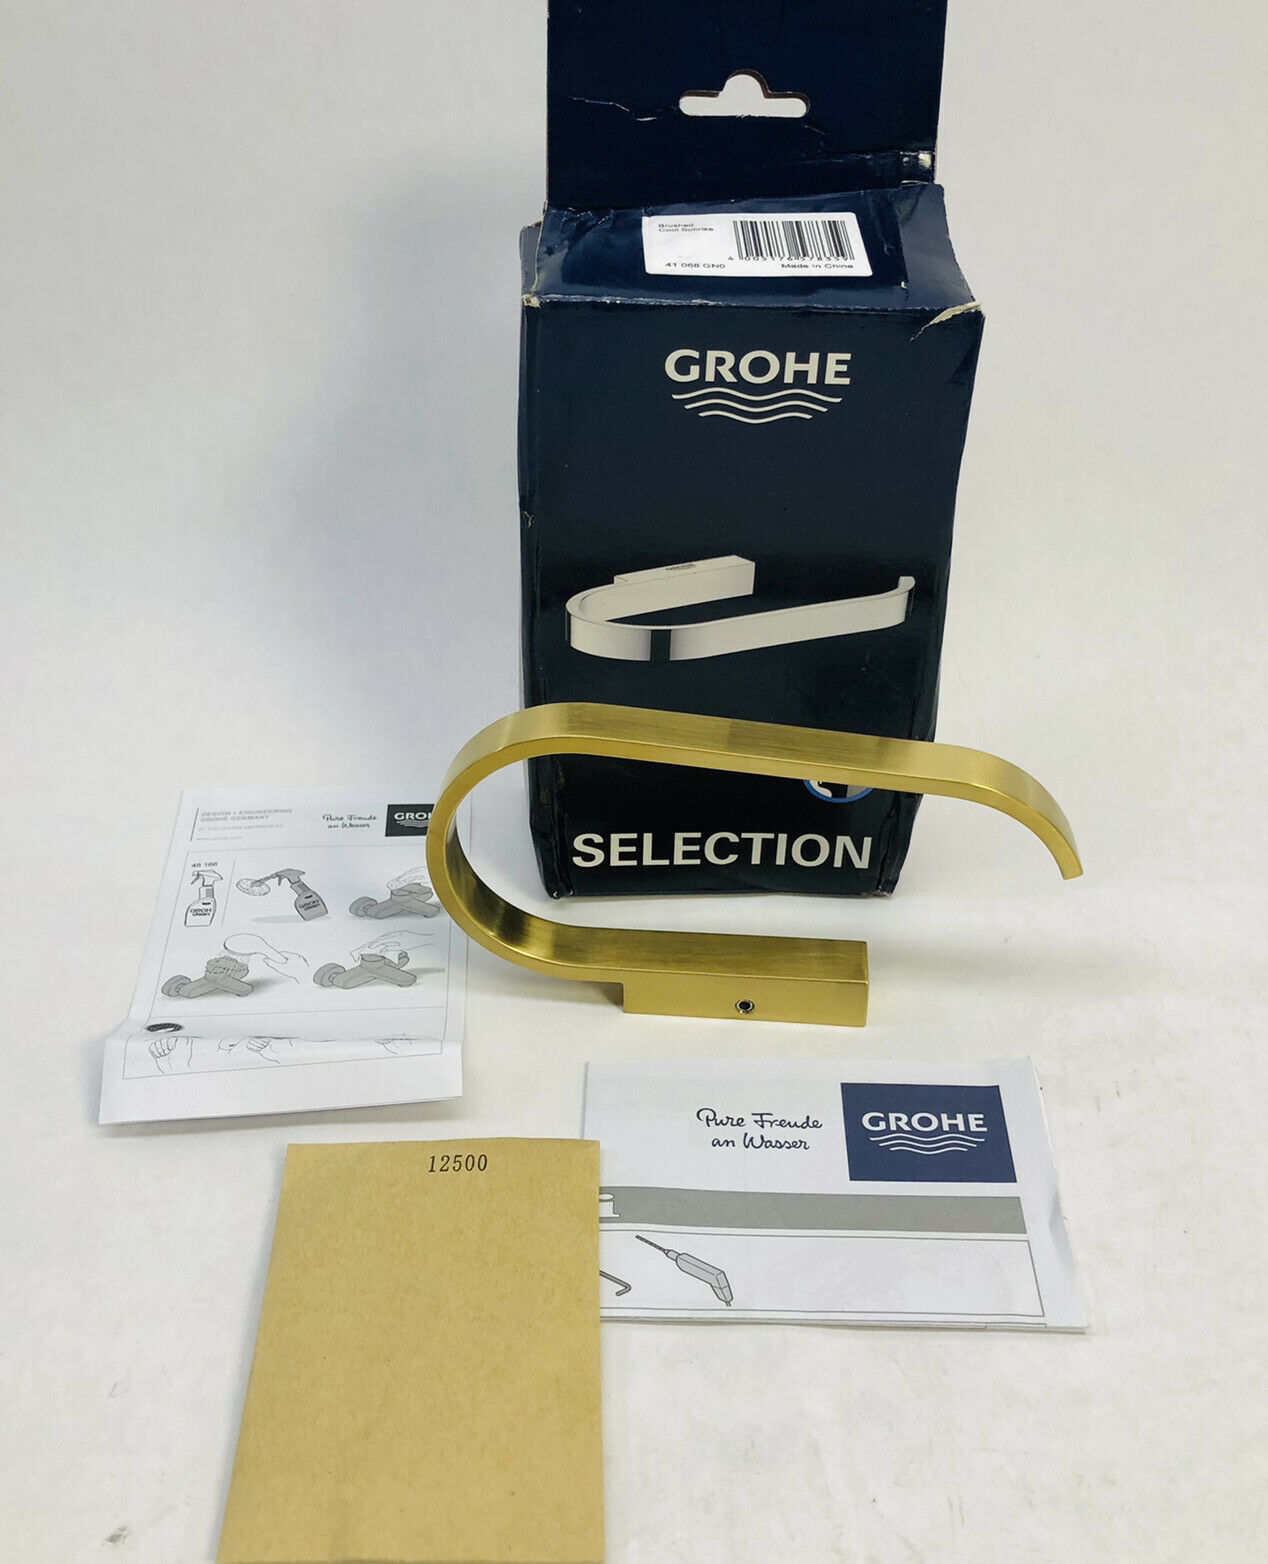 GROHE #41068 SELECTION WALL MOUNTED EURO TOILET PAPER HOLDER BRUSHED COOL